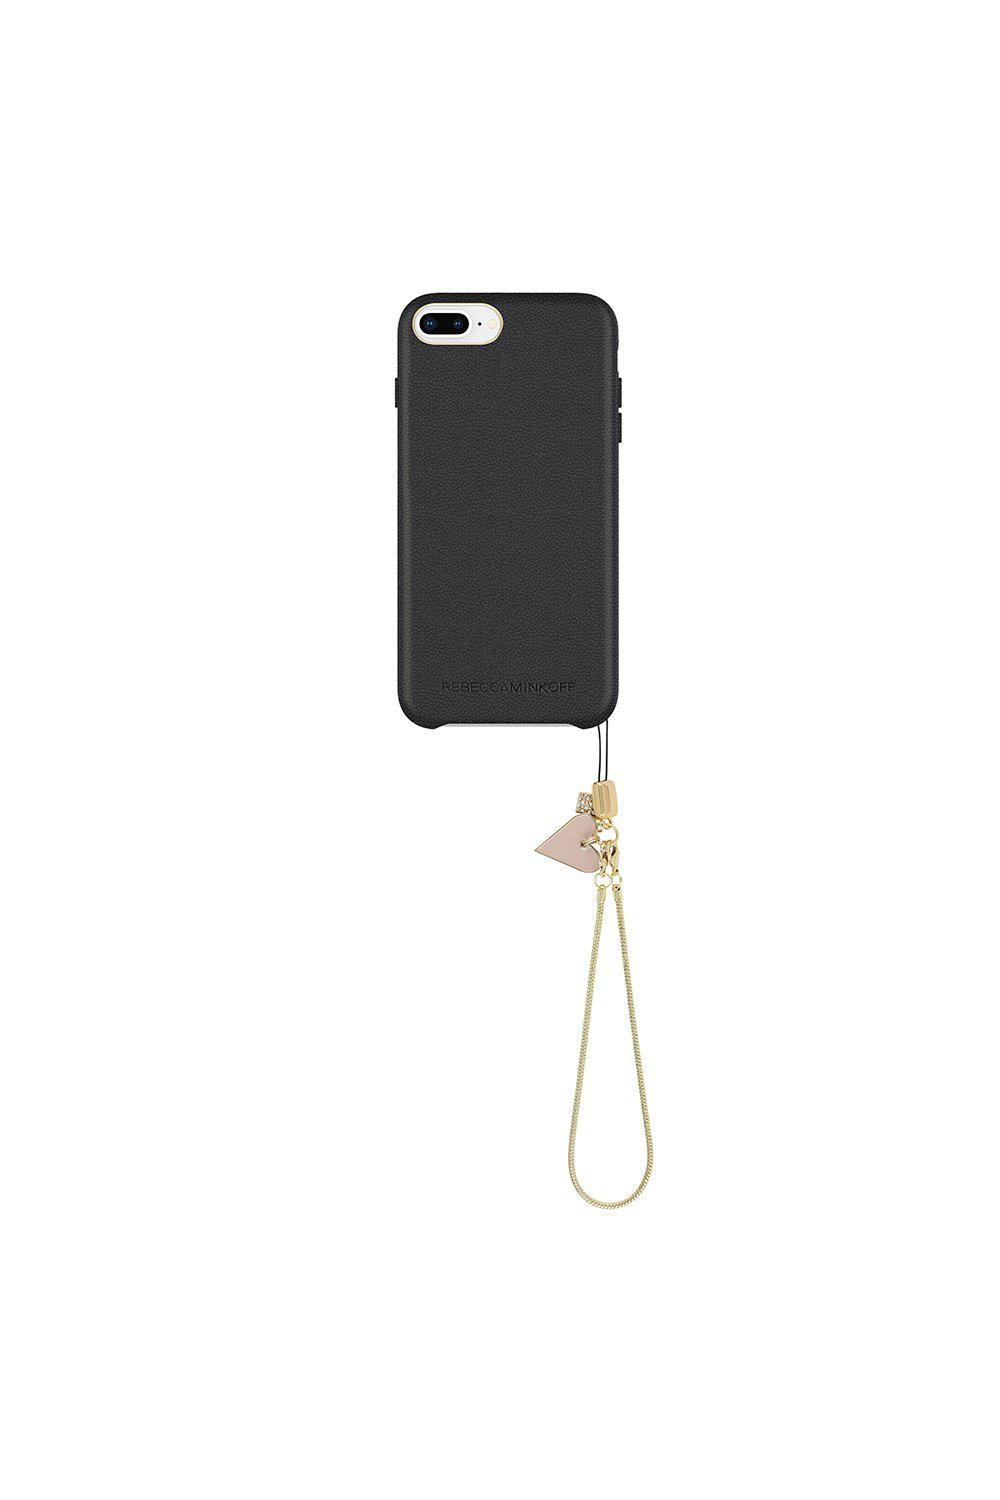 huge selection of 82c4a af670 Rebecca Minkoff Black Leather Wrapped Case With Heart Charm Iphone 8 Plus &  Iphone 7 Plus